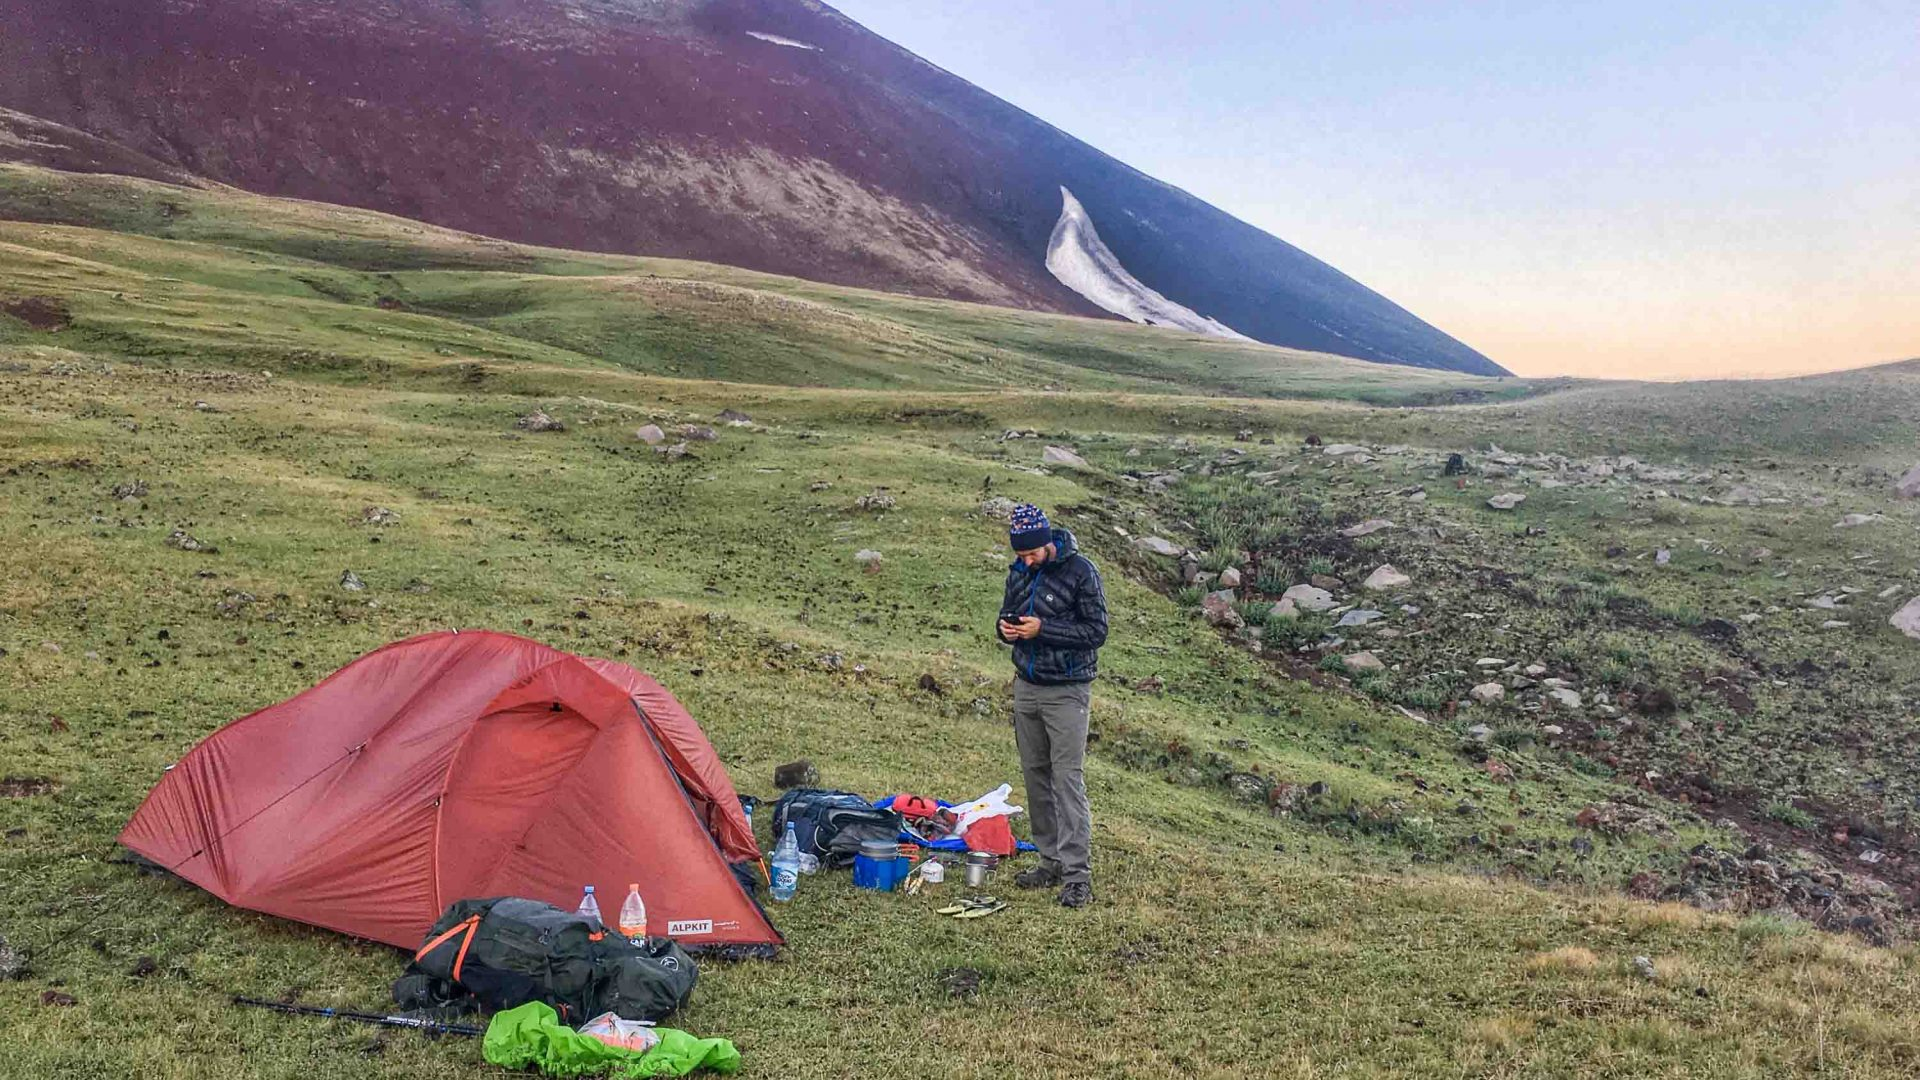 Campsite on Azdahak mountain the morning before the summit push.